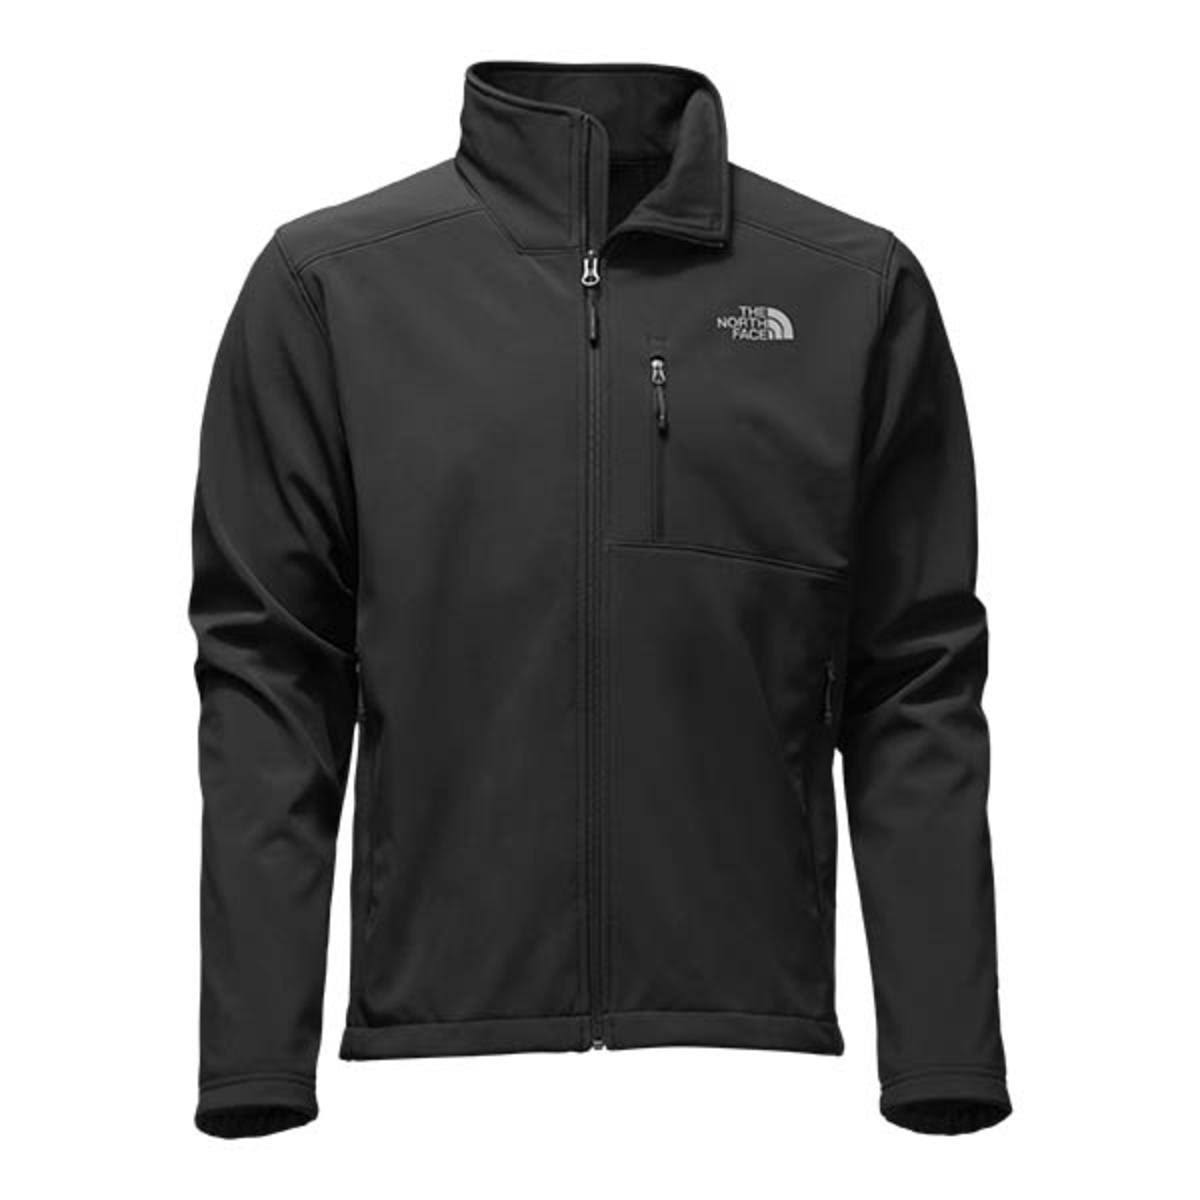 The North Face Men's Apex Bionic 2 Jacket - Tall Urban Navy / Urban Navy L